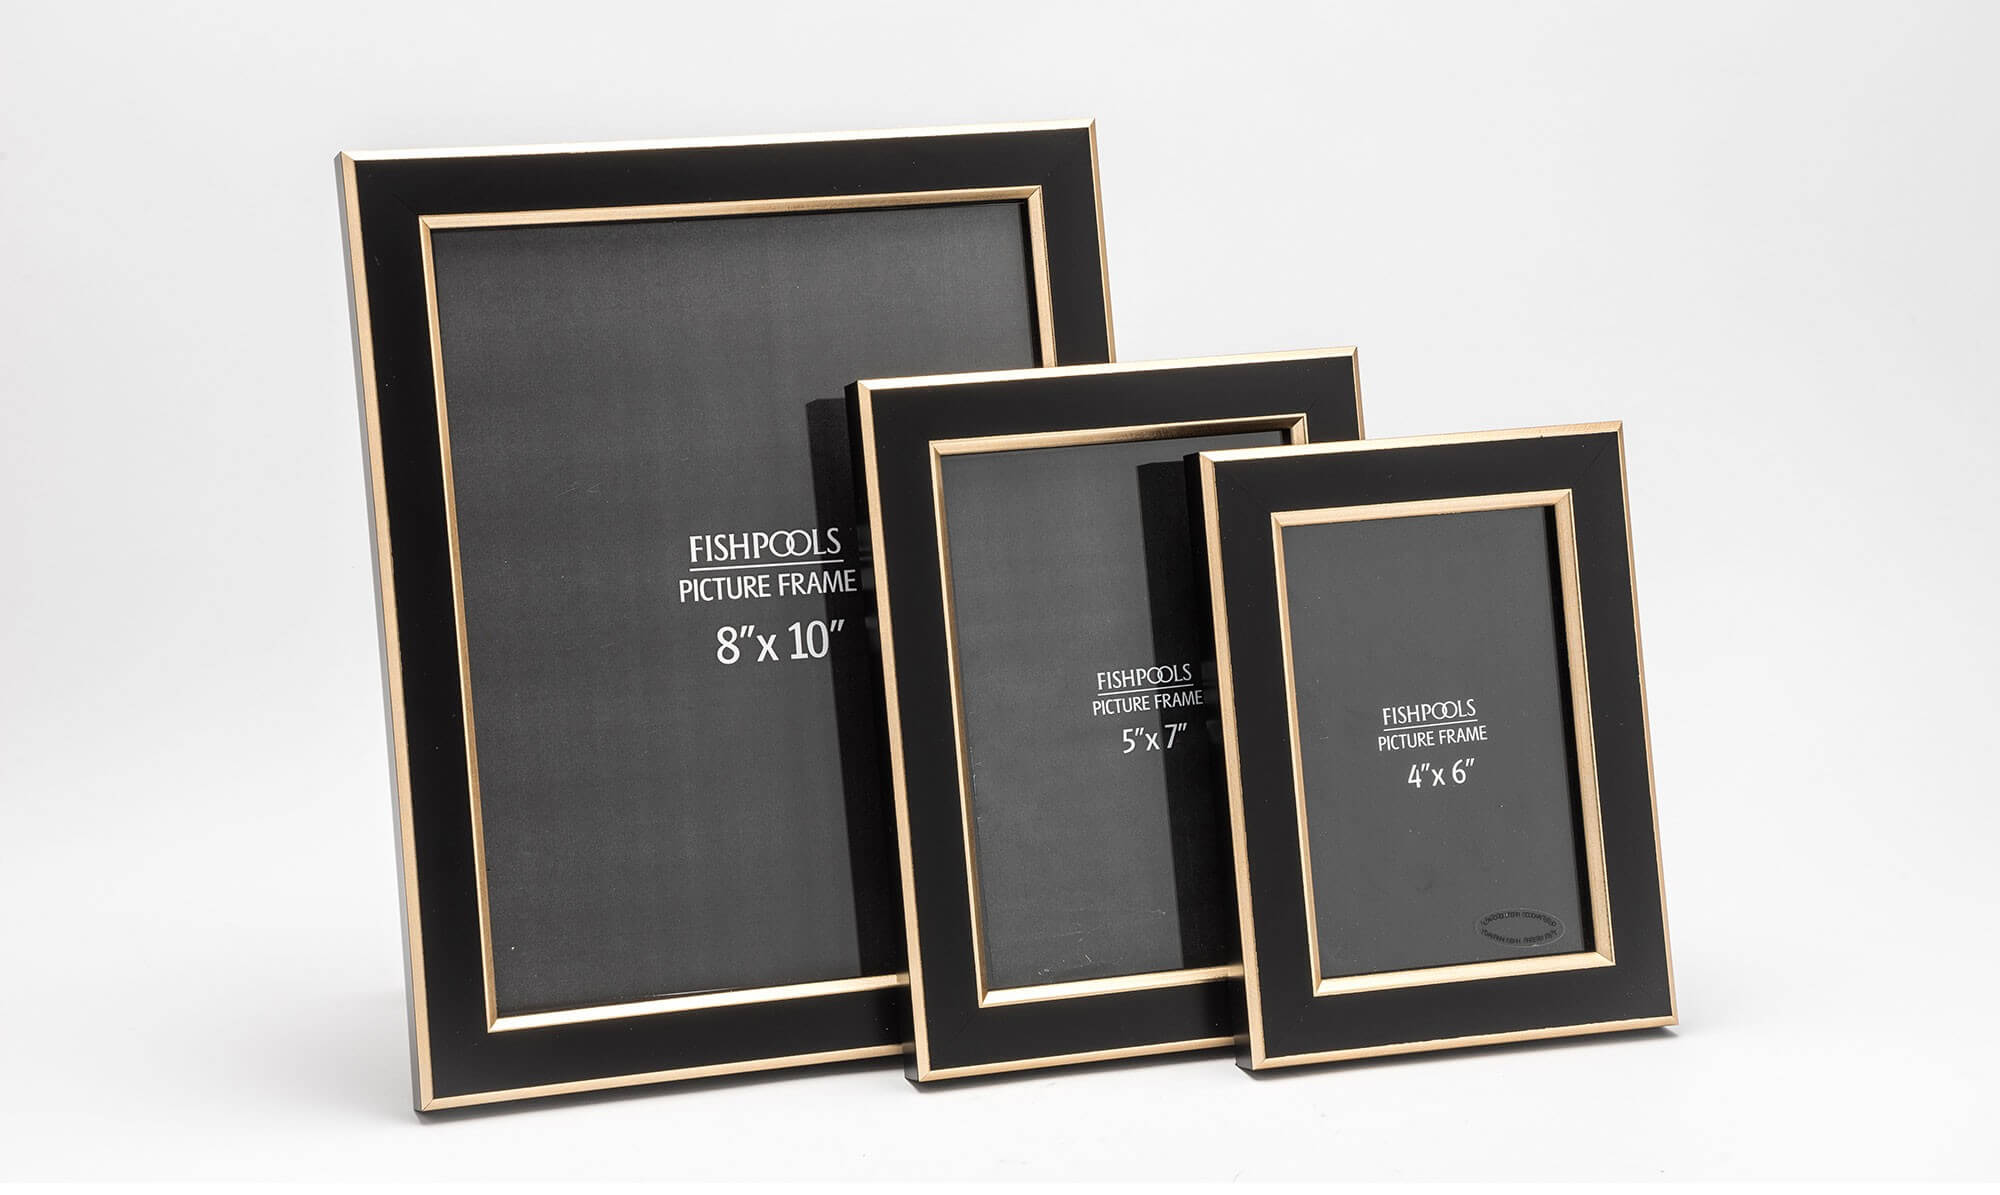 Fishpools black and gold picture frame